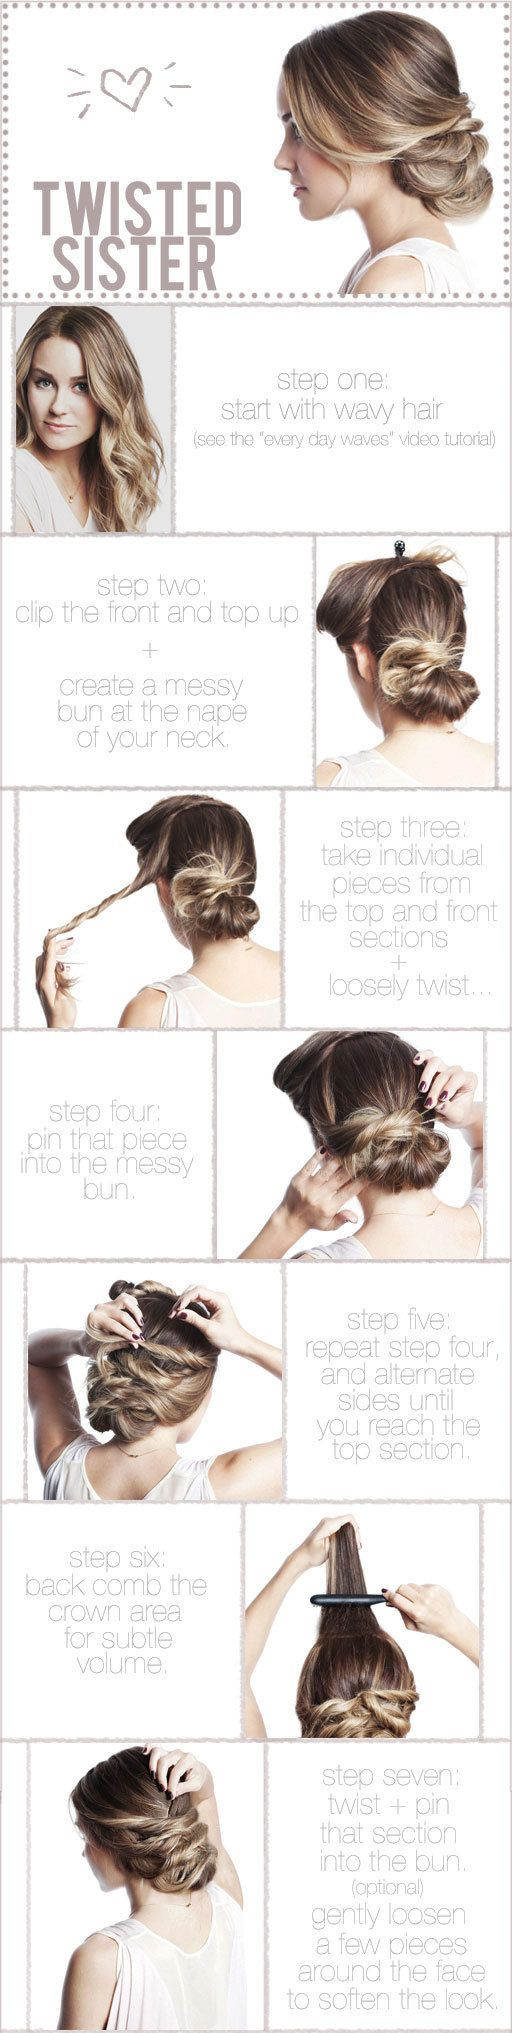 three fav pre wedding DIY bridal hairstyles how to tutorials for brides 3 | OneWed.com